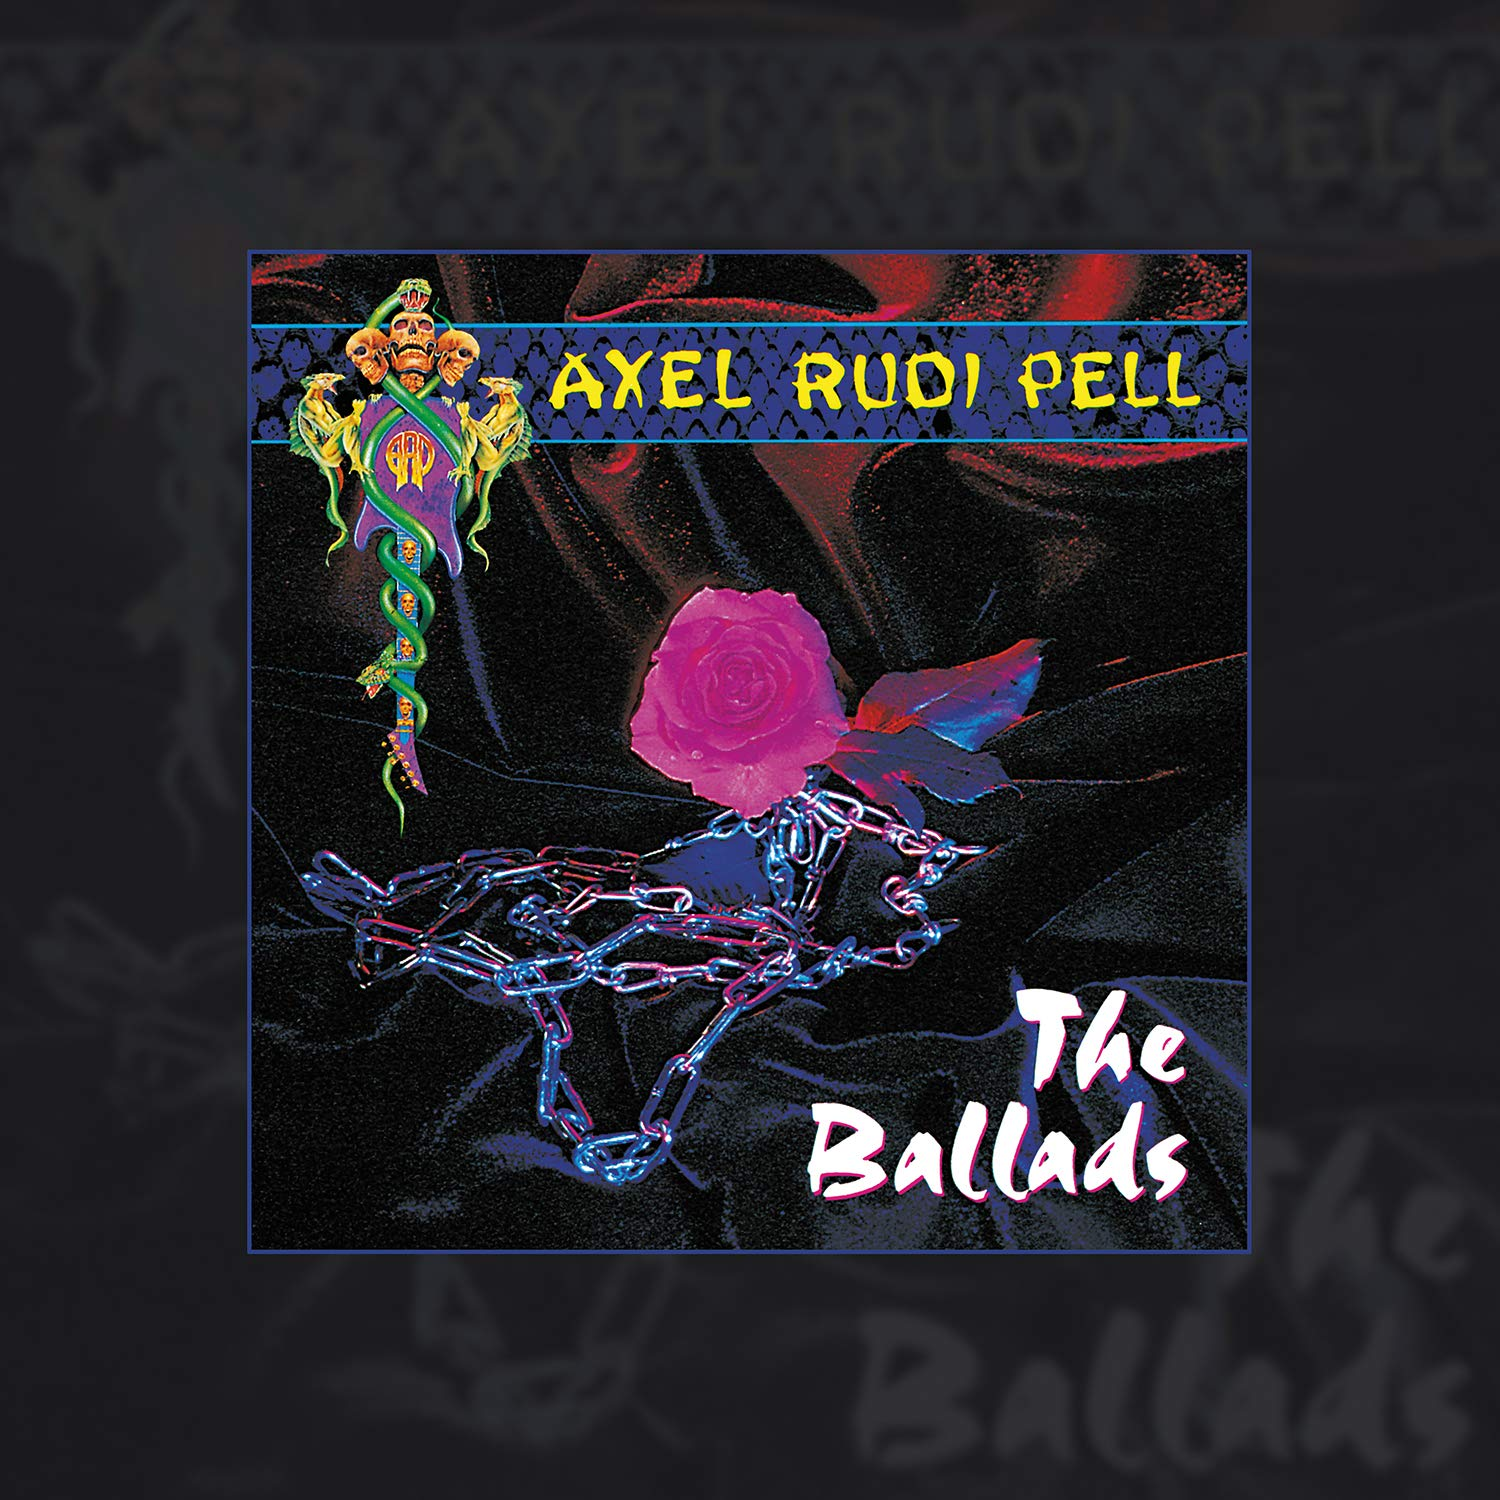 Axel Rudi Pell - The Ballads